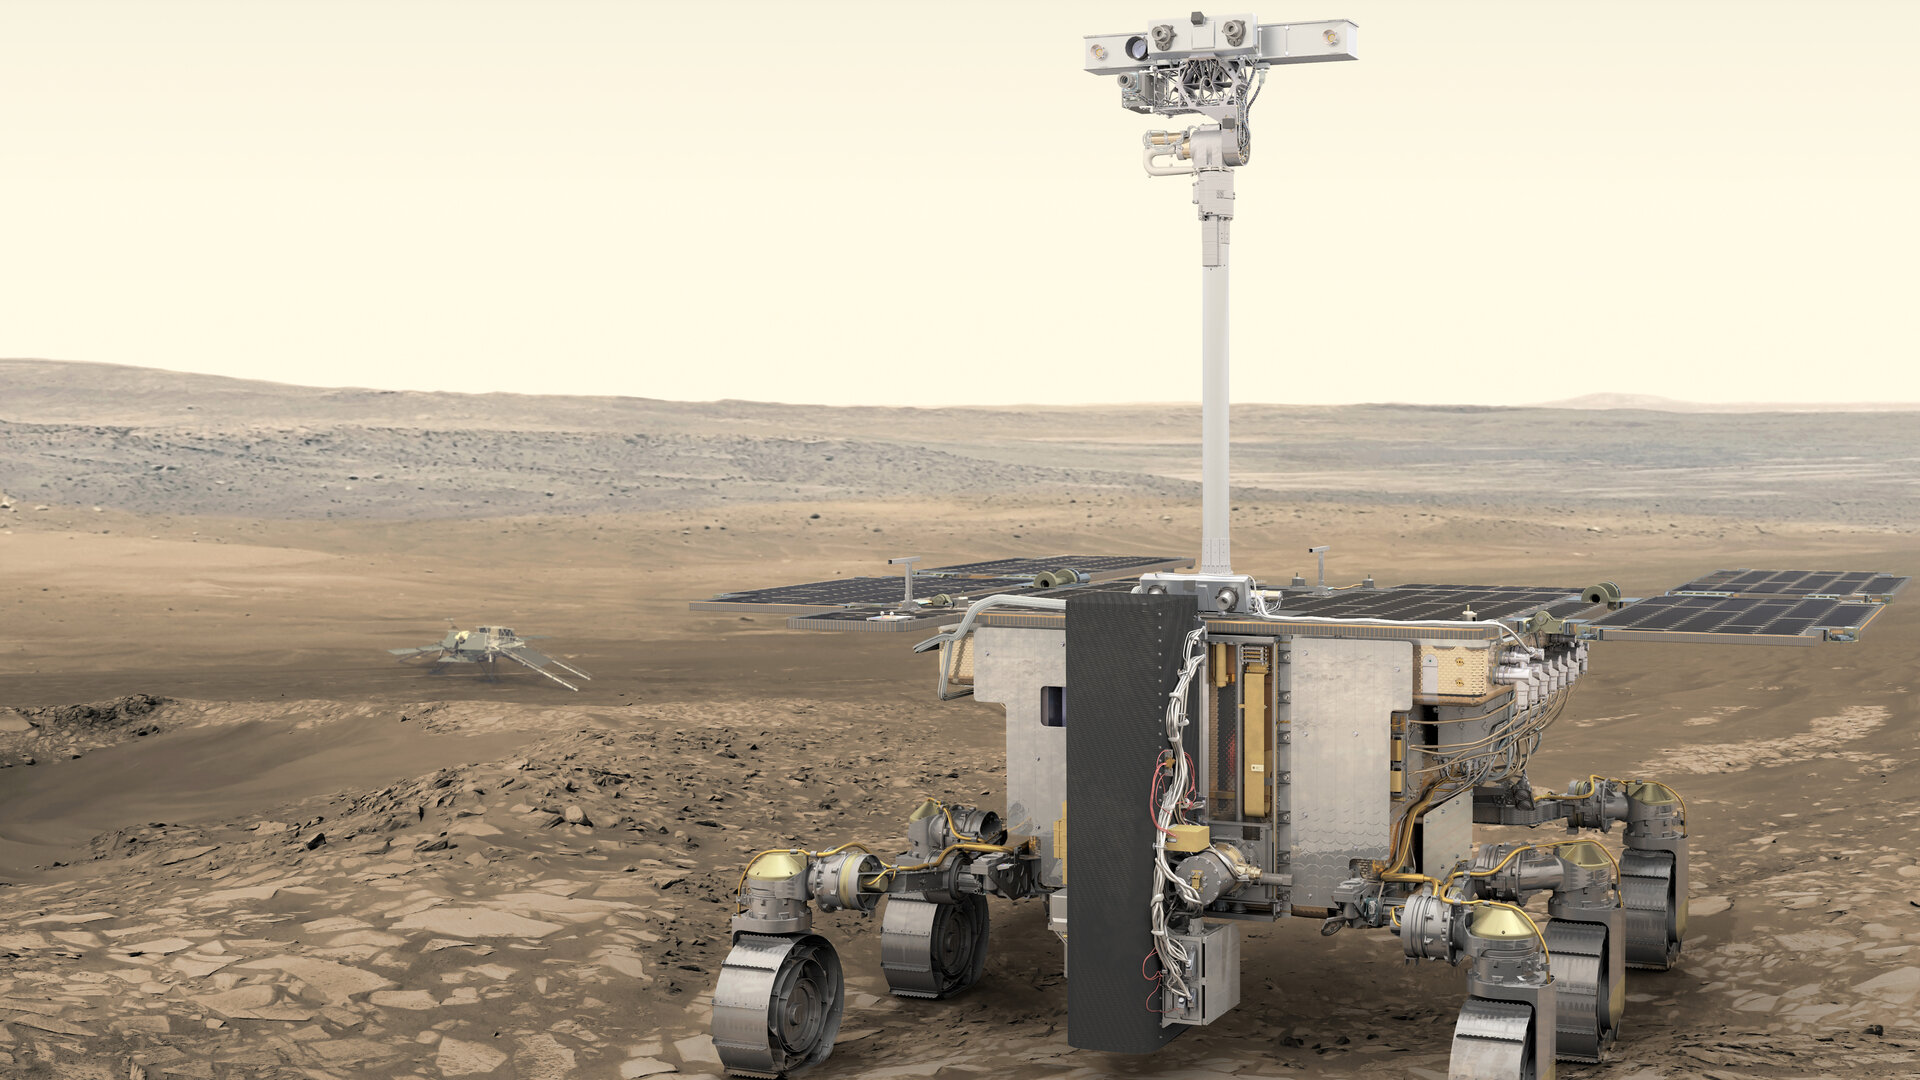 The camera atop the mast of the Exomars 2020 rover was developed and built at UCL